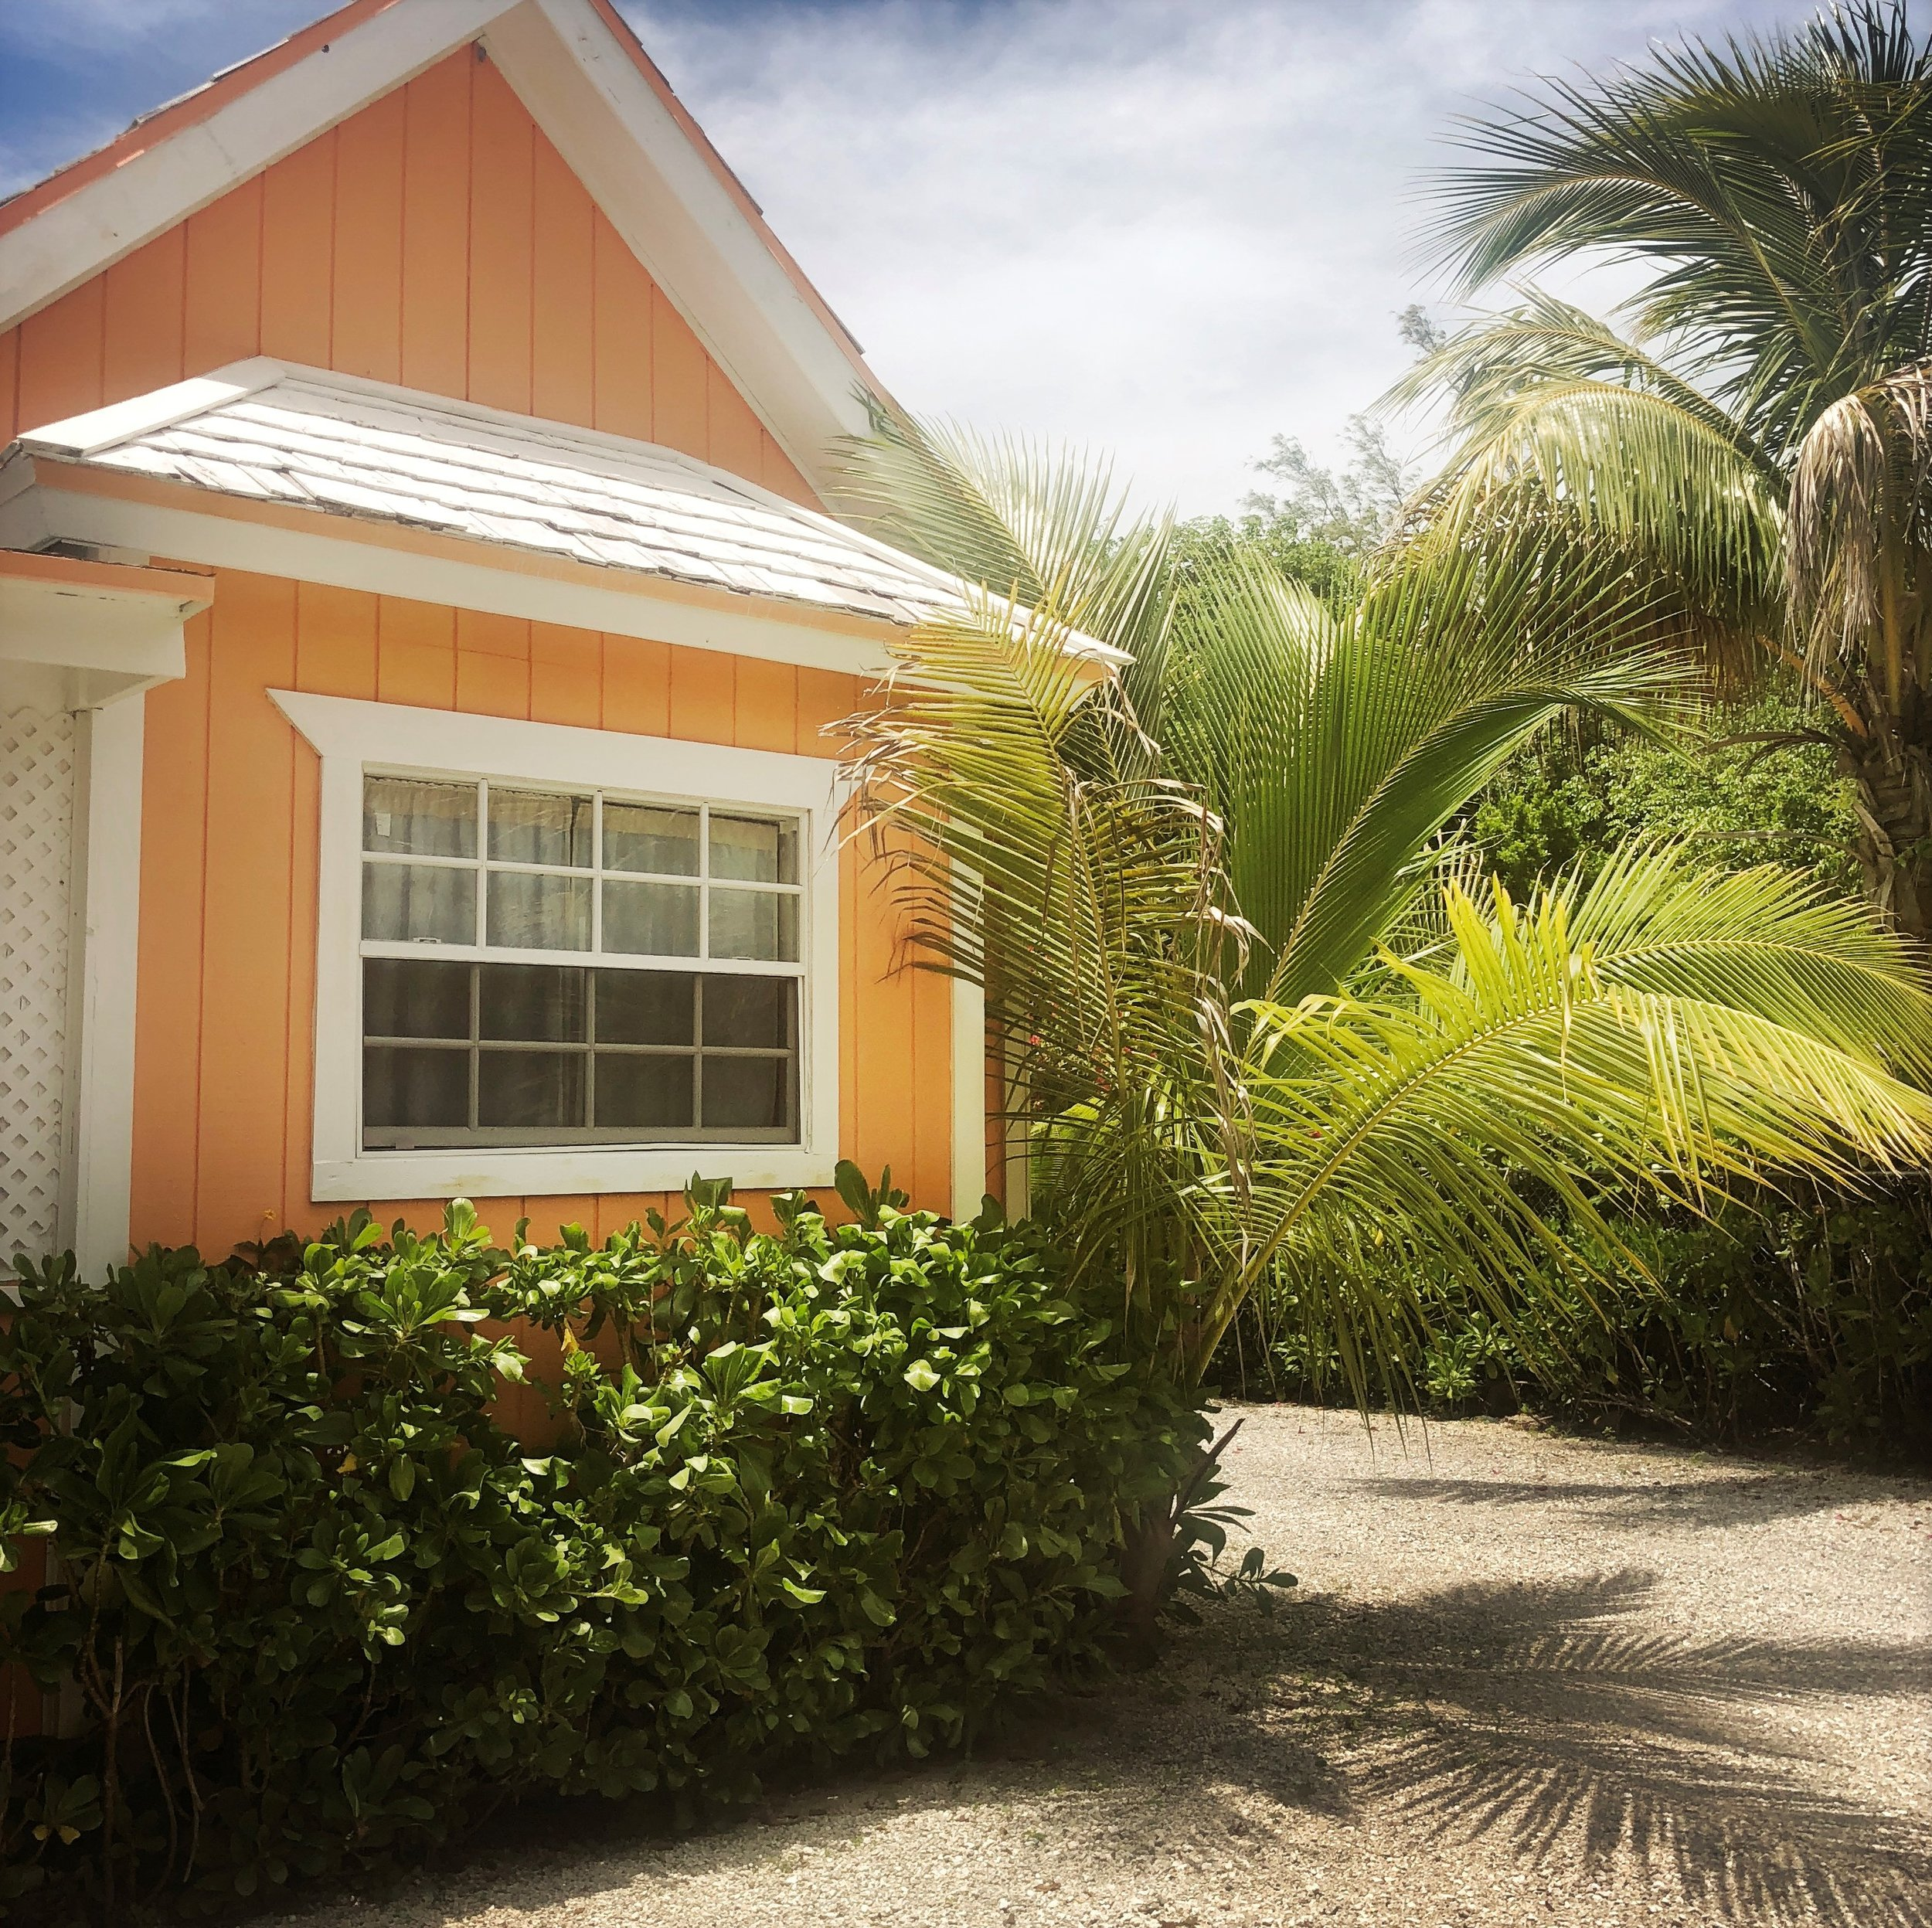 Open Air Places - Sea Shell Cottage at Diamonds by the Sea 1.jpg